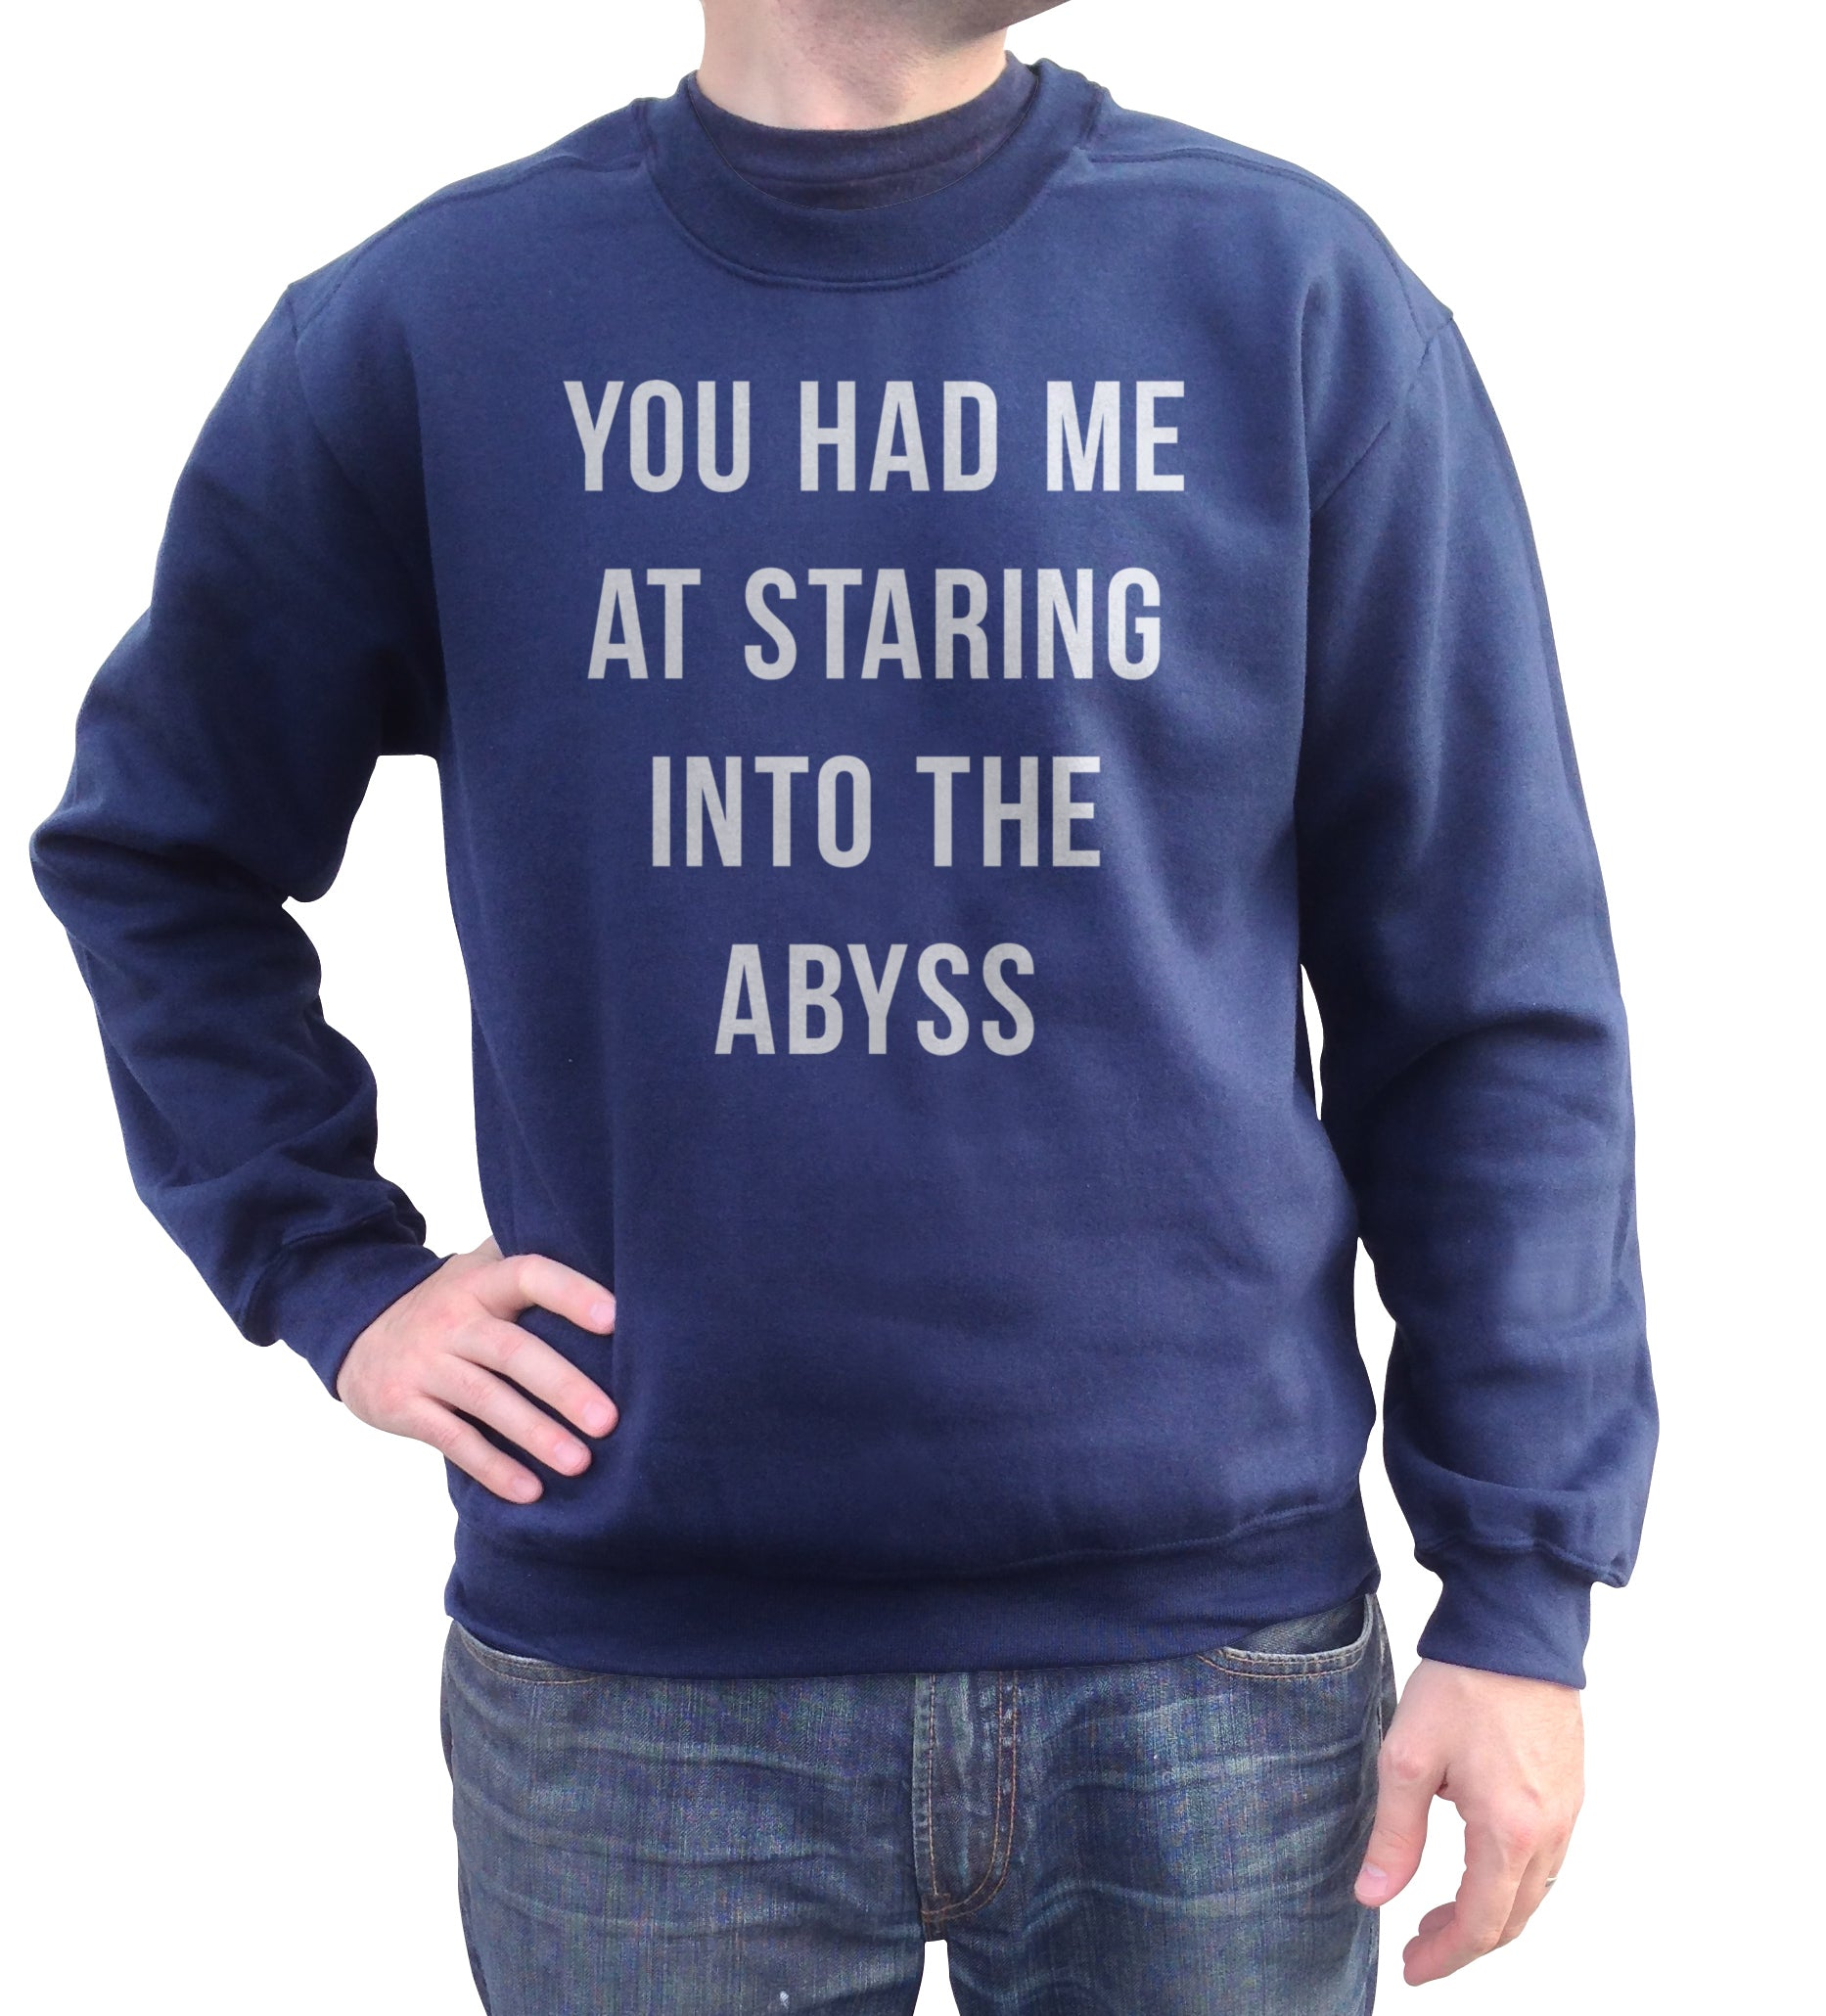 Unisex You Had Me at Staring Into the Abyss Sweatshirt - Nihilism Existentialism